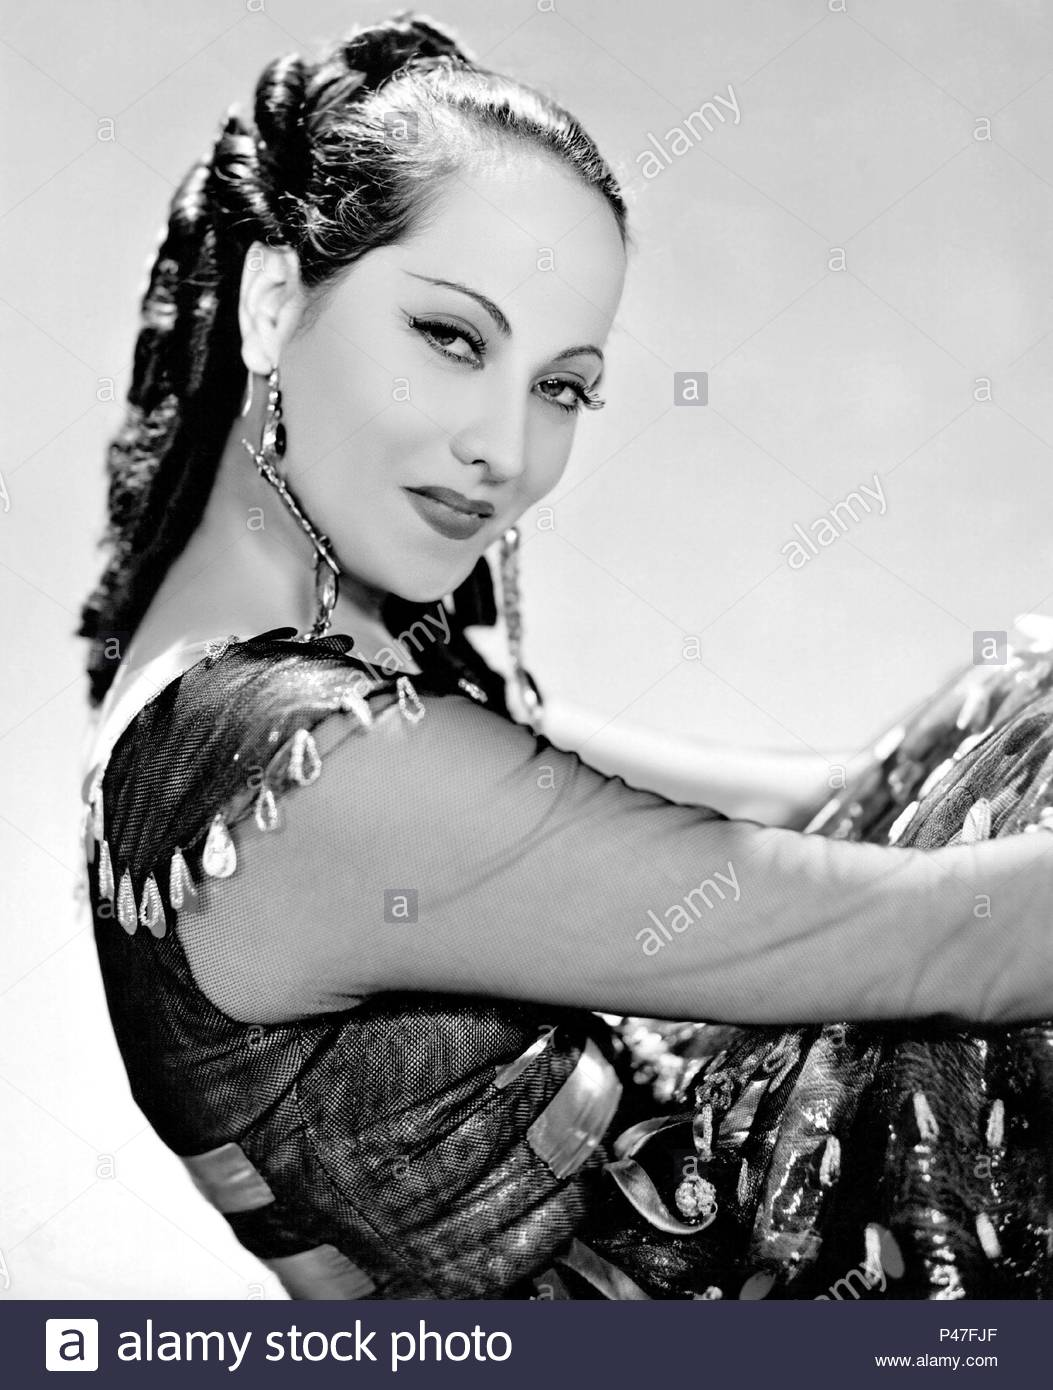 Original Film Title: THE PRIVATE LIFE OF DON JUAN.  English Title: THE PRIVATE LIFE OF DON JUAN.  Film Director: ALEXANDER KORDA.  Year: 1934.  Stars: MERLE OBERON. Credit: LONDON FILMS / Album - Stock Image